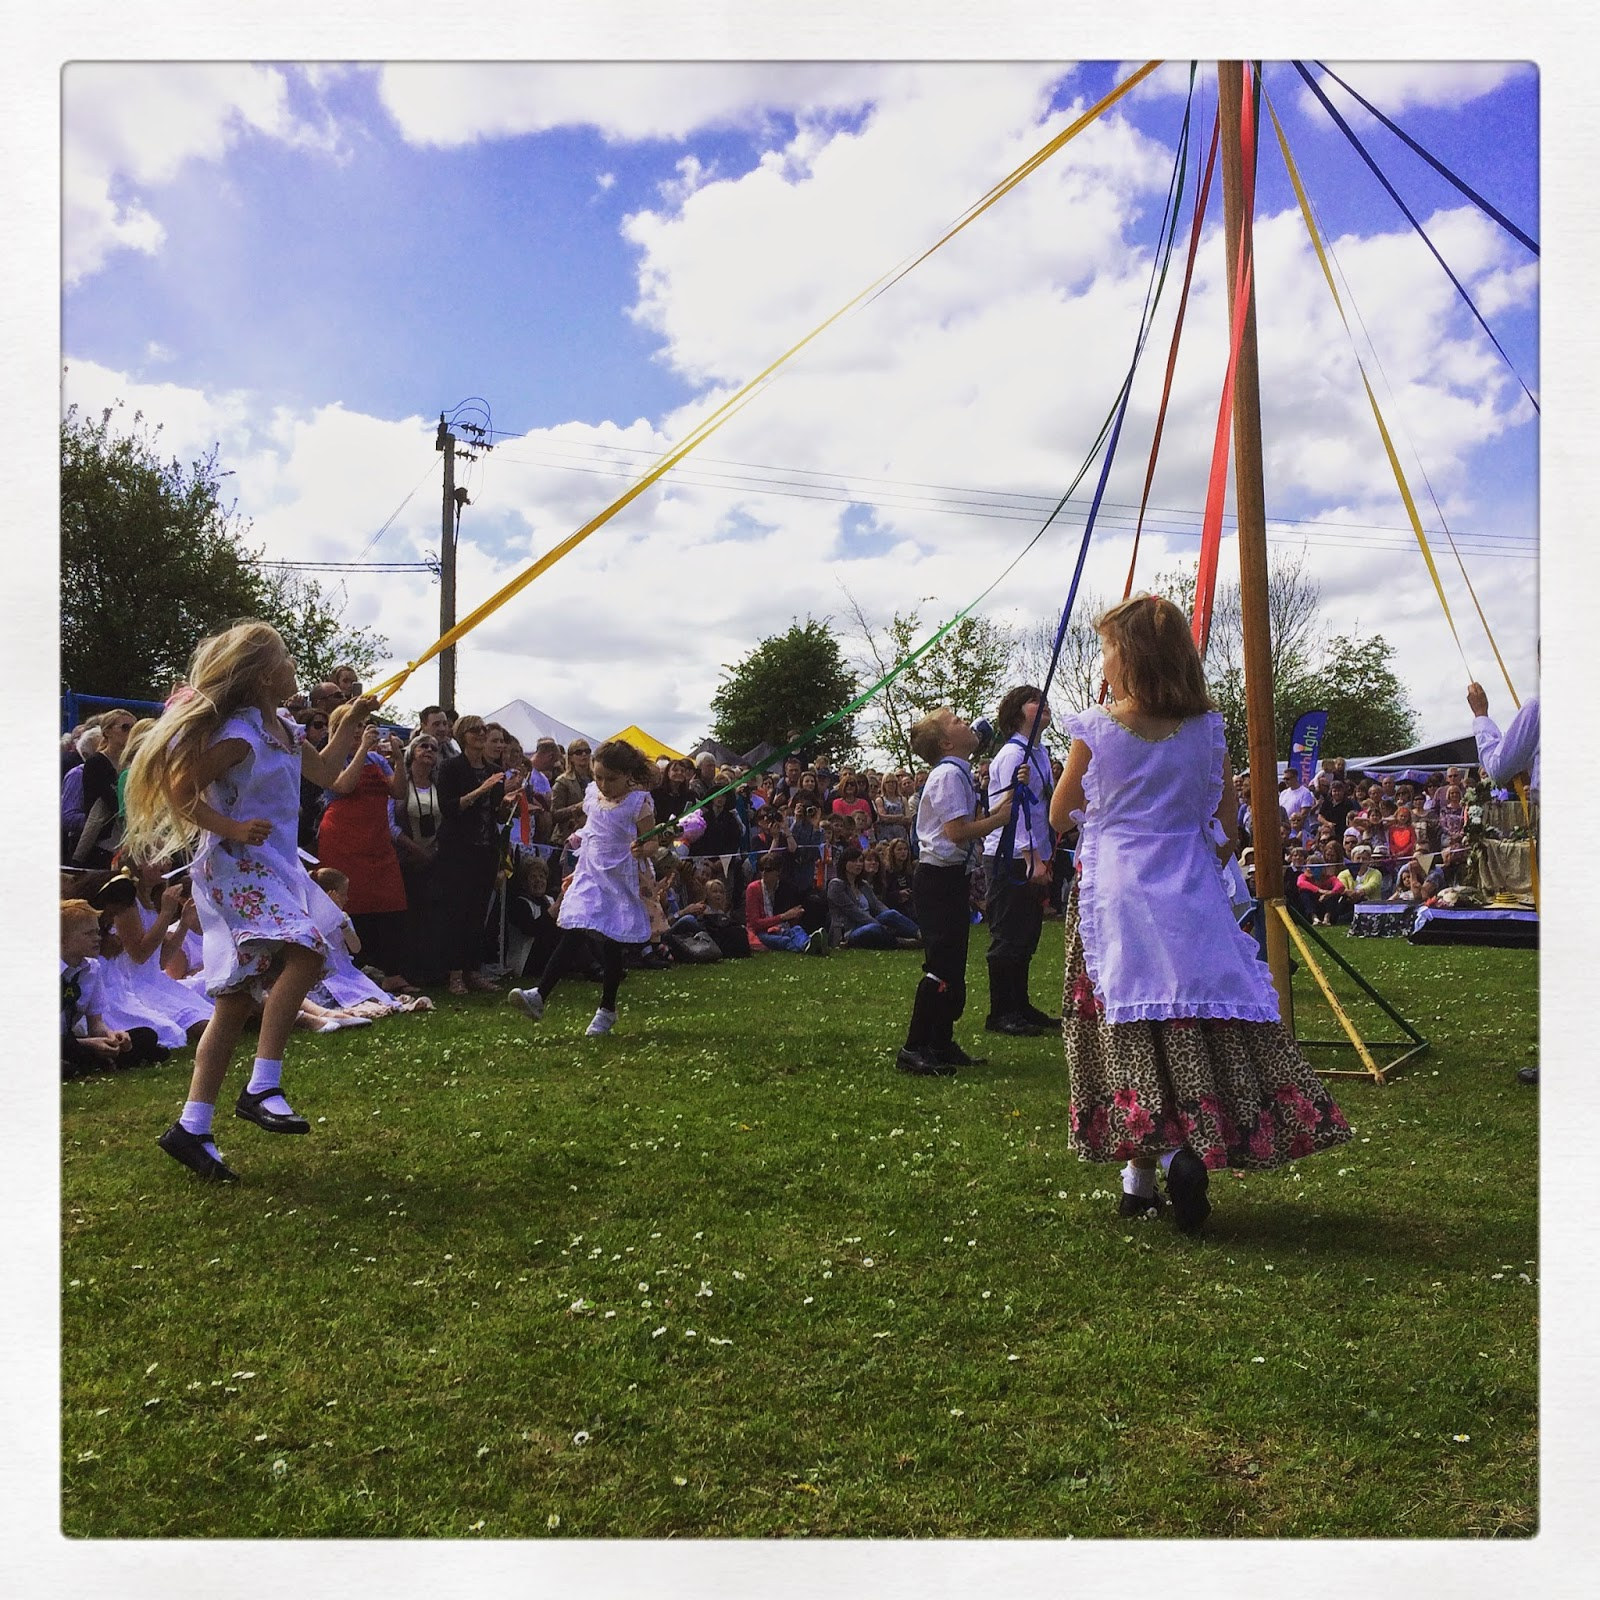 English Maypole dancers